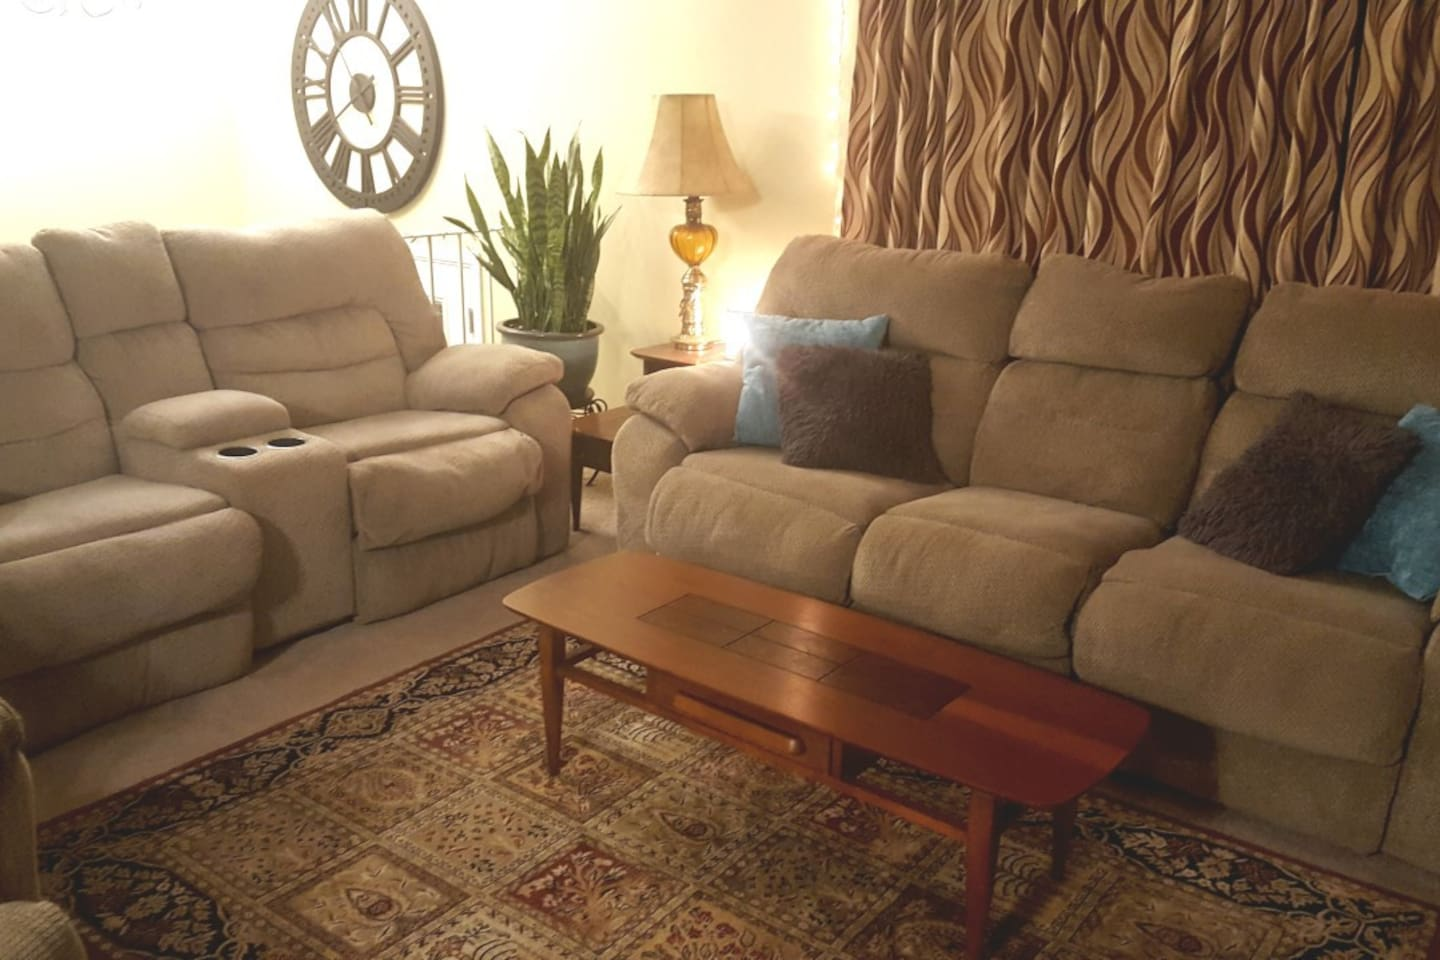 Cozy, comfortable living space. Enjoy the big game in the comfort of your warm inviting atmosphere.